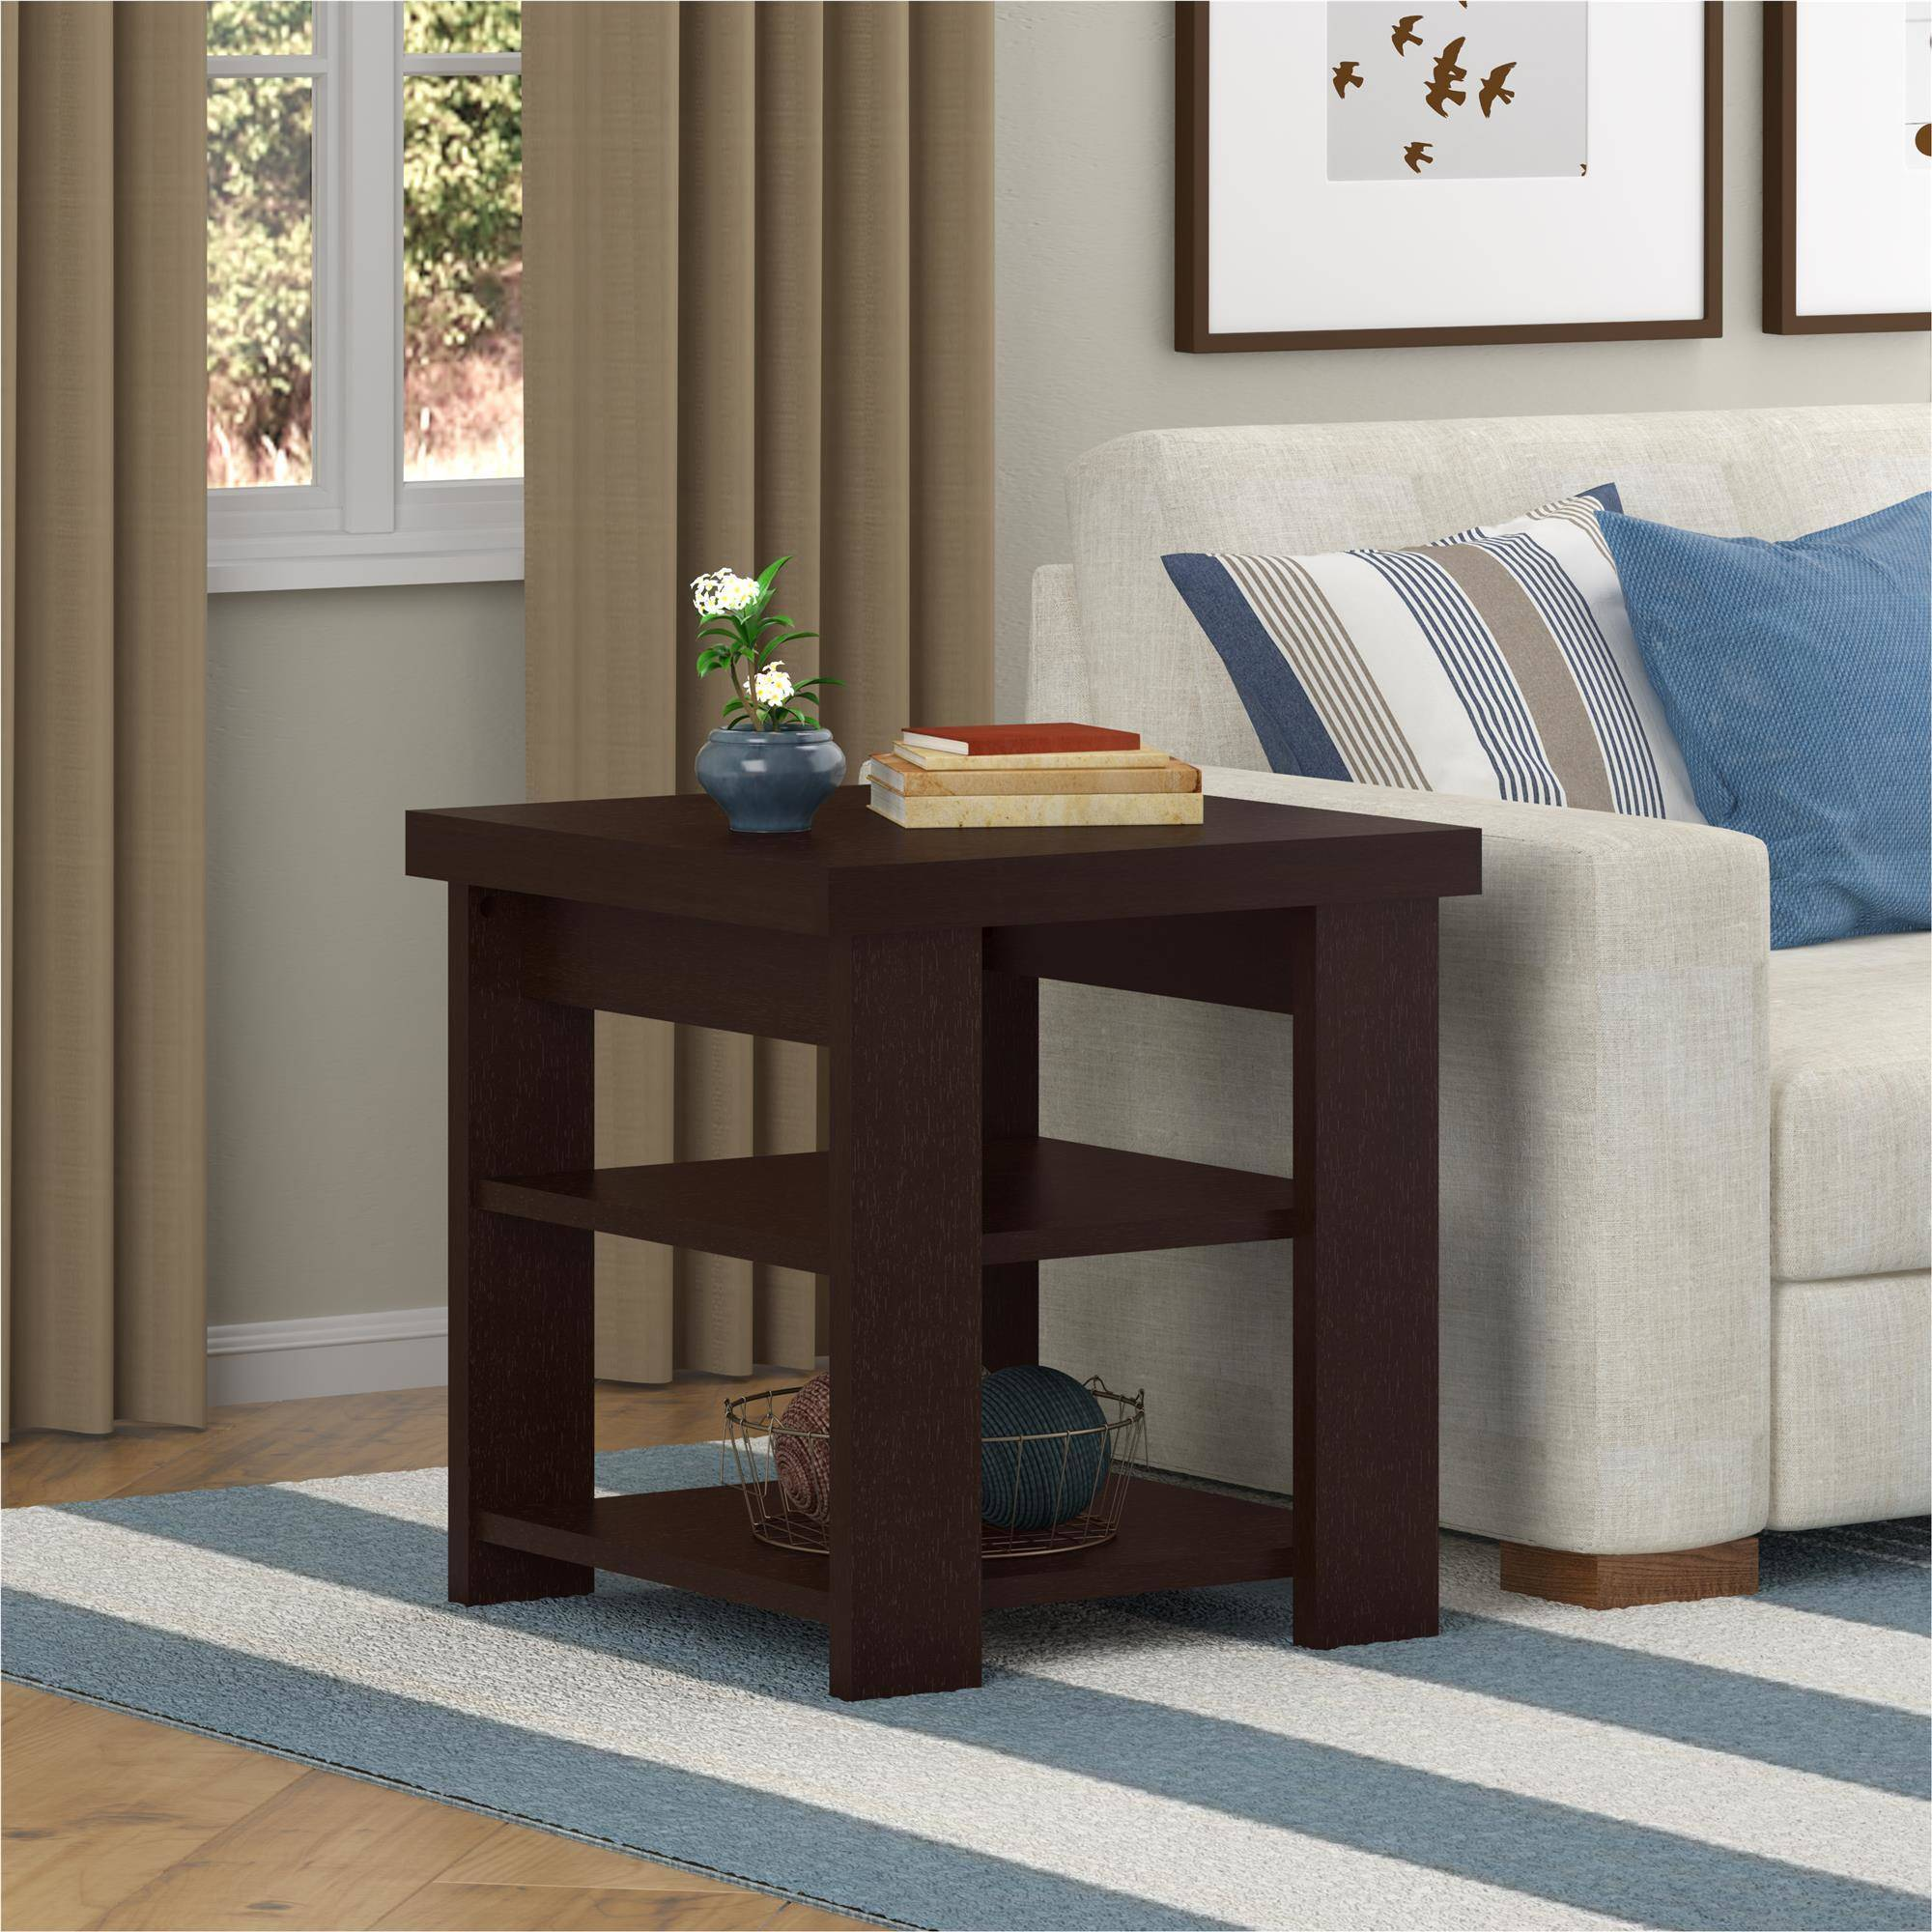 Larkin Espresso End Tables   Value Bundle   Walmart.com